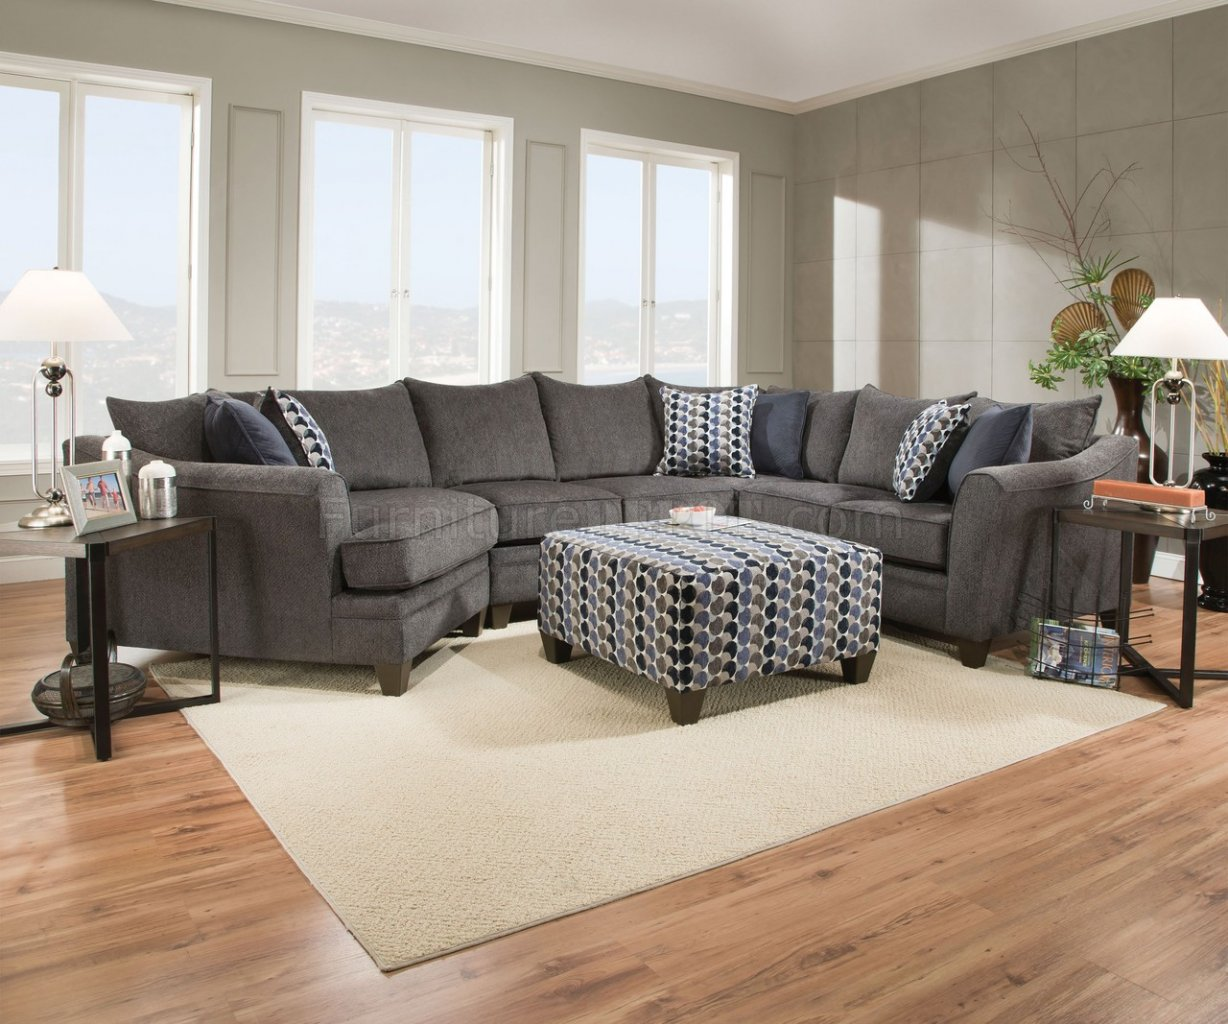 albany sectional sofa in grey fabric by acme woptions p